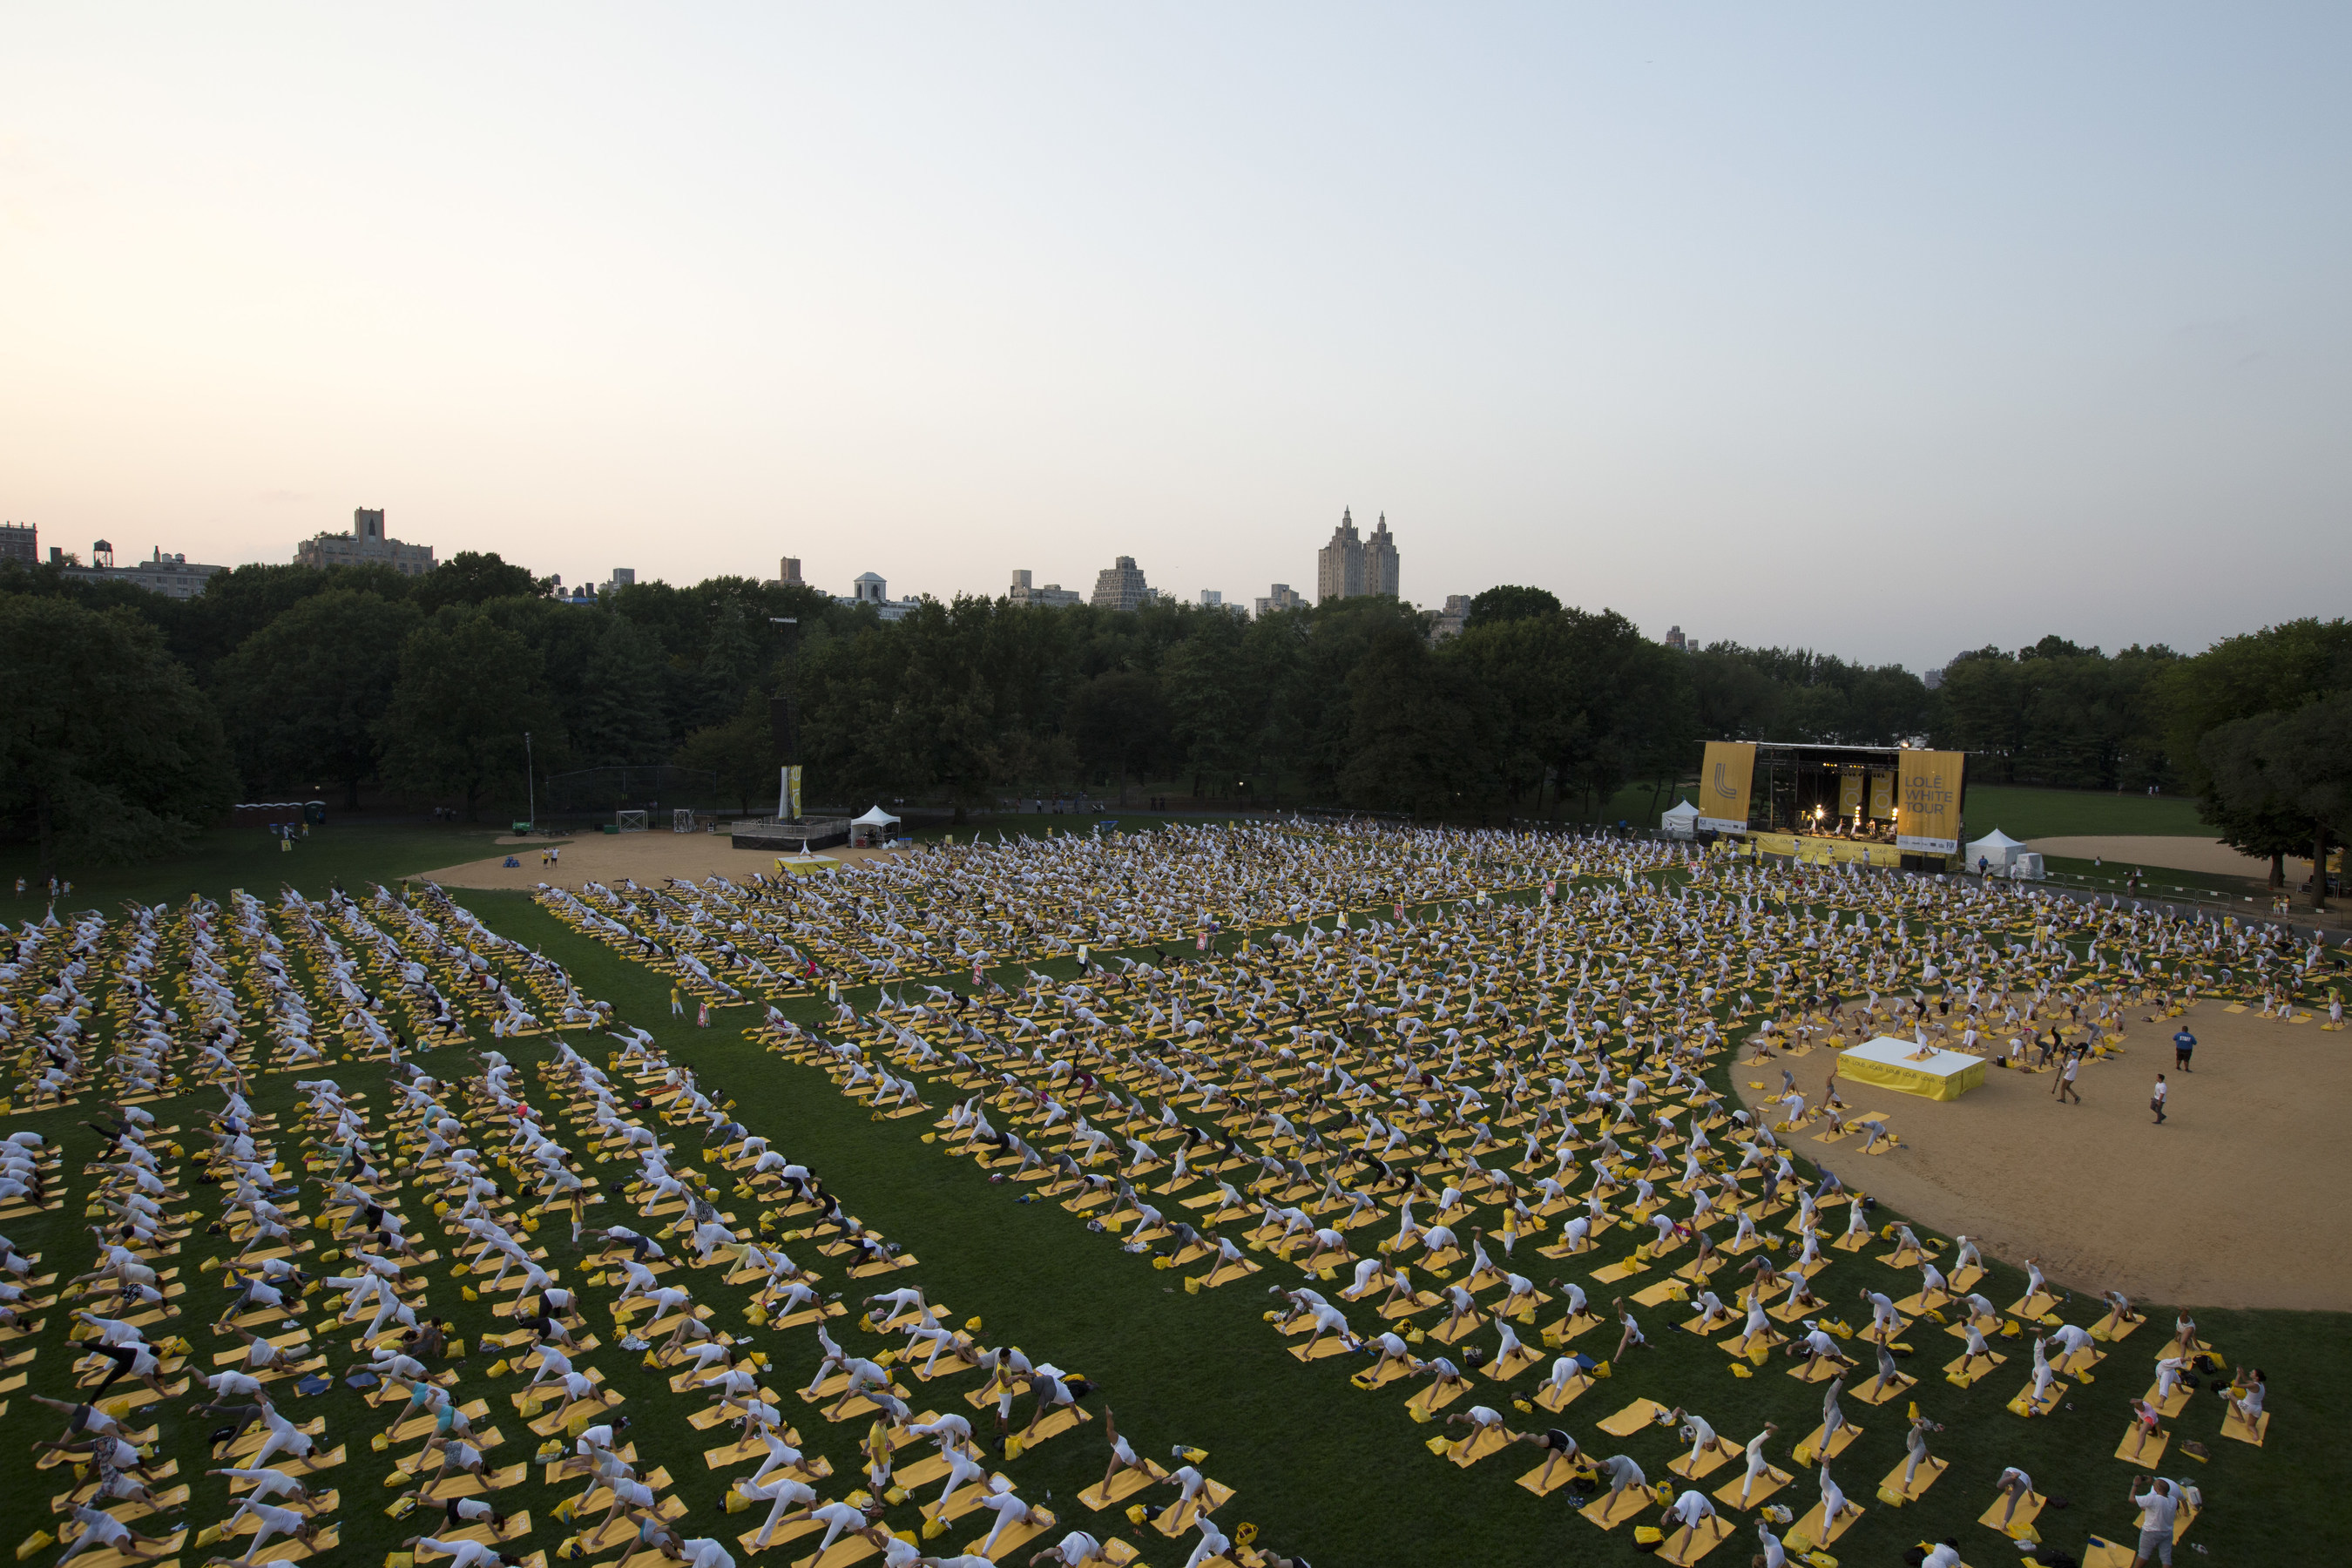 LOLE WHITE TOUR MAKES HISTORY WITH CENTRAL PARK EVENT UNITING CLOSE TO 10,000 YOGIS